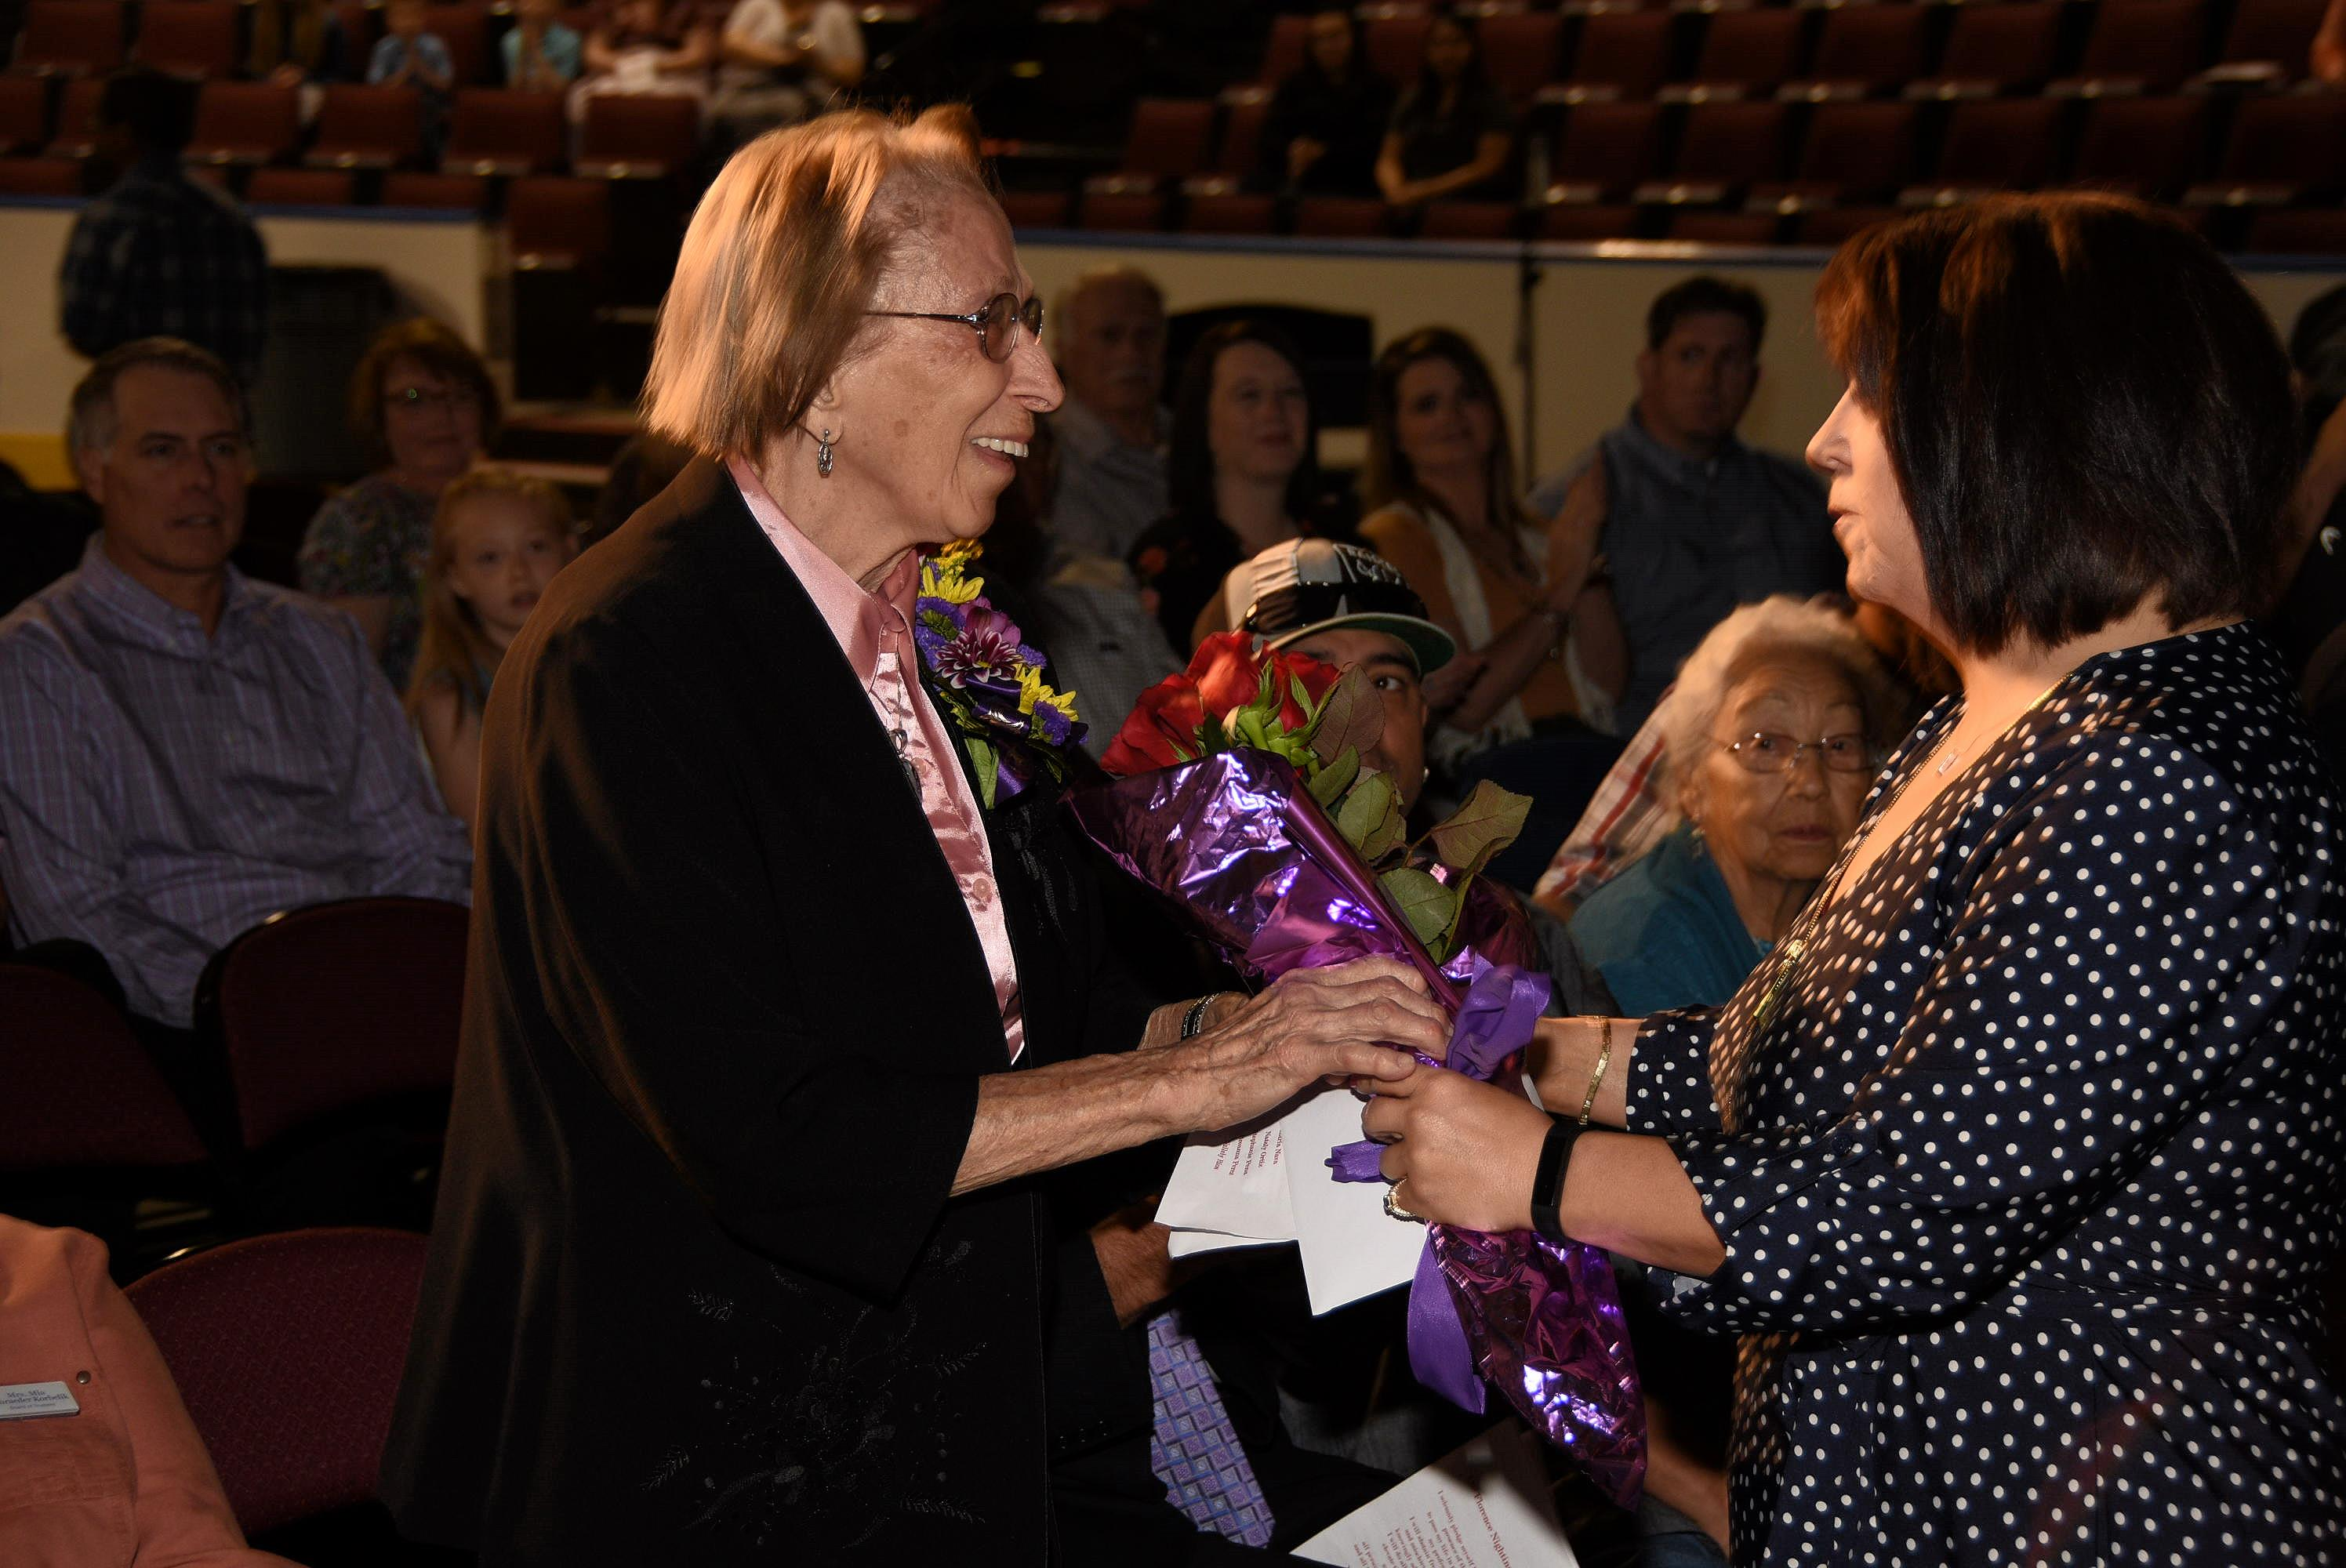 Floris Jean honored with flowers during the 2018 Nursing Pinning